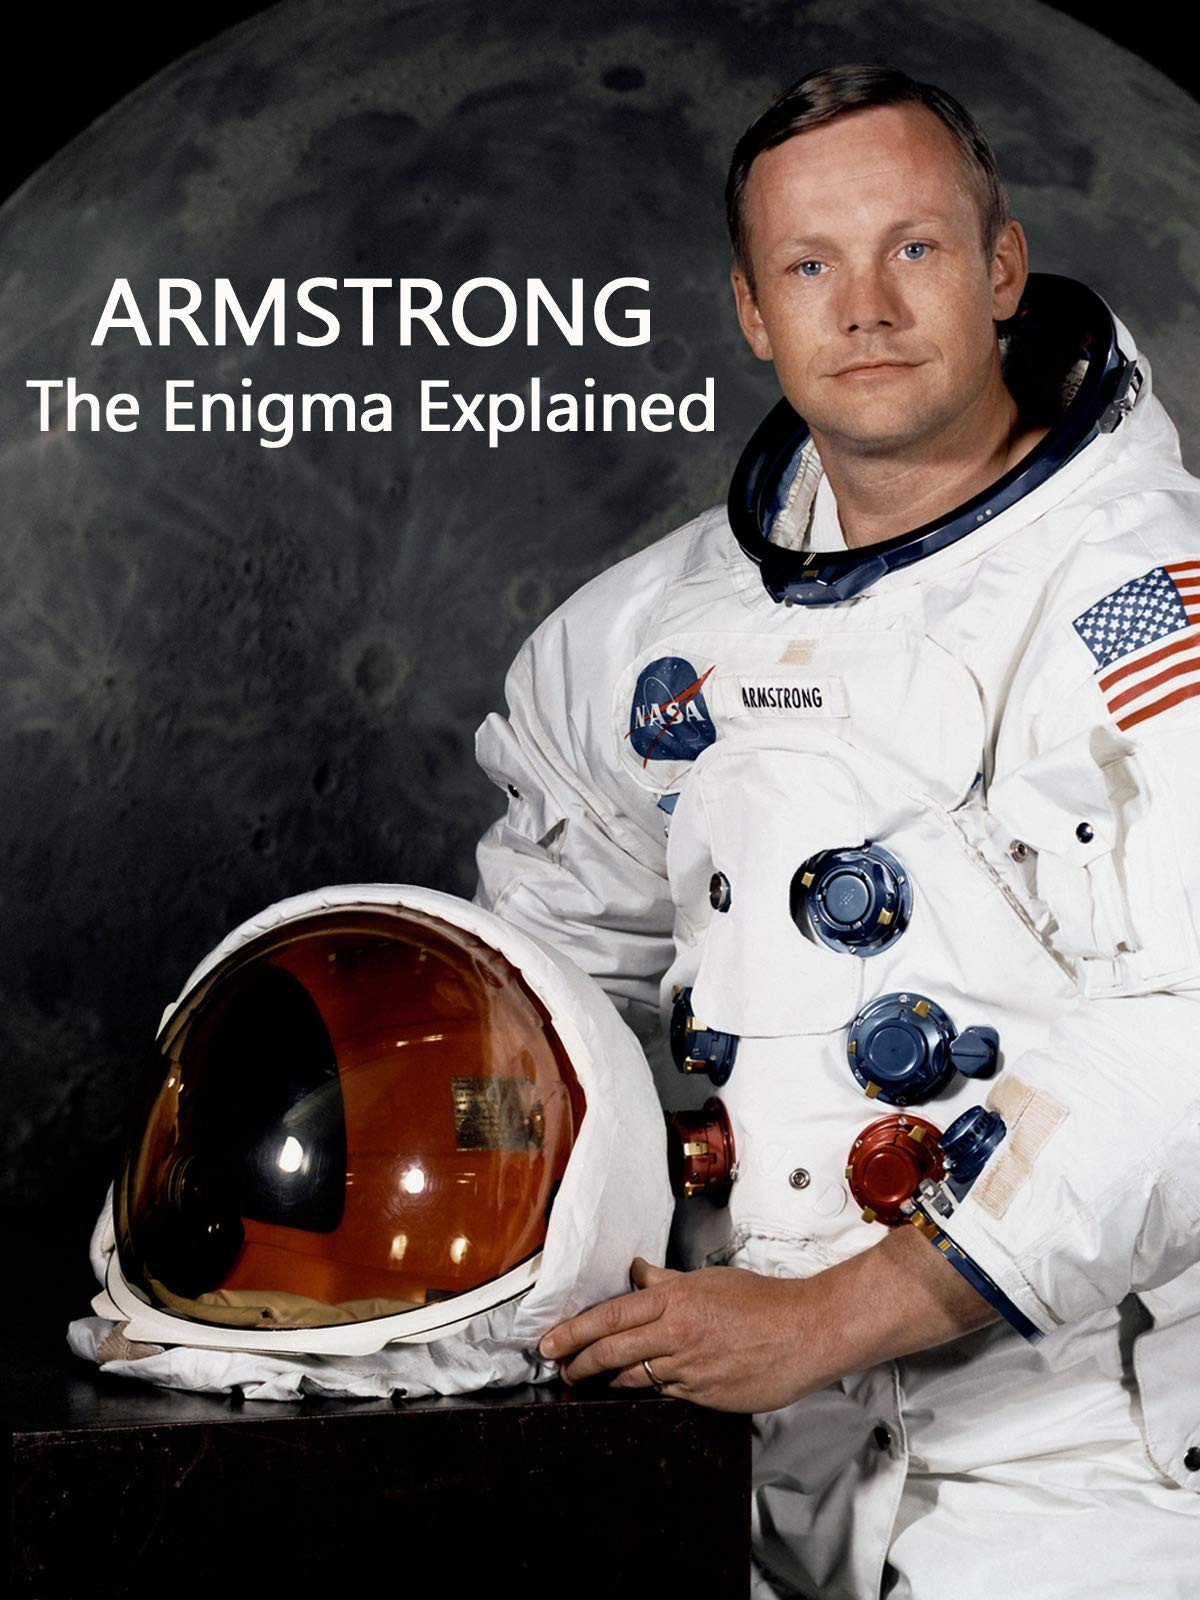 Armstrong - The Enigma Explained